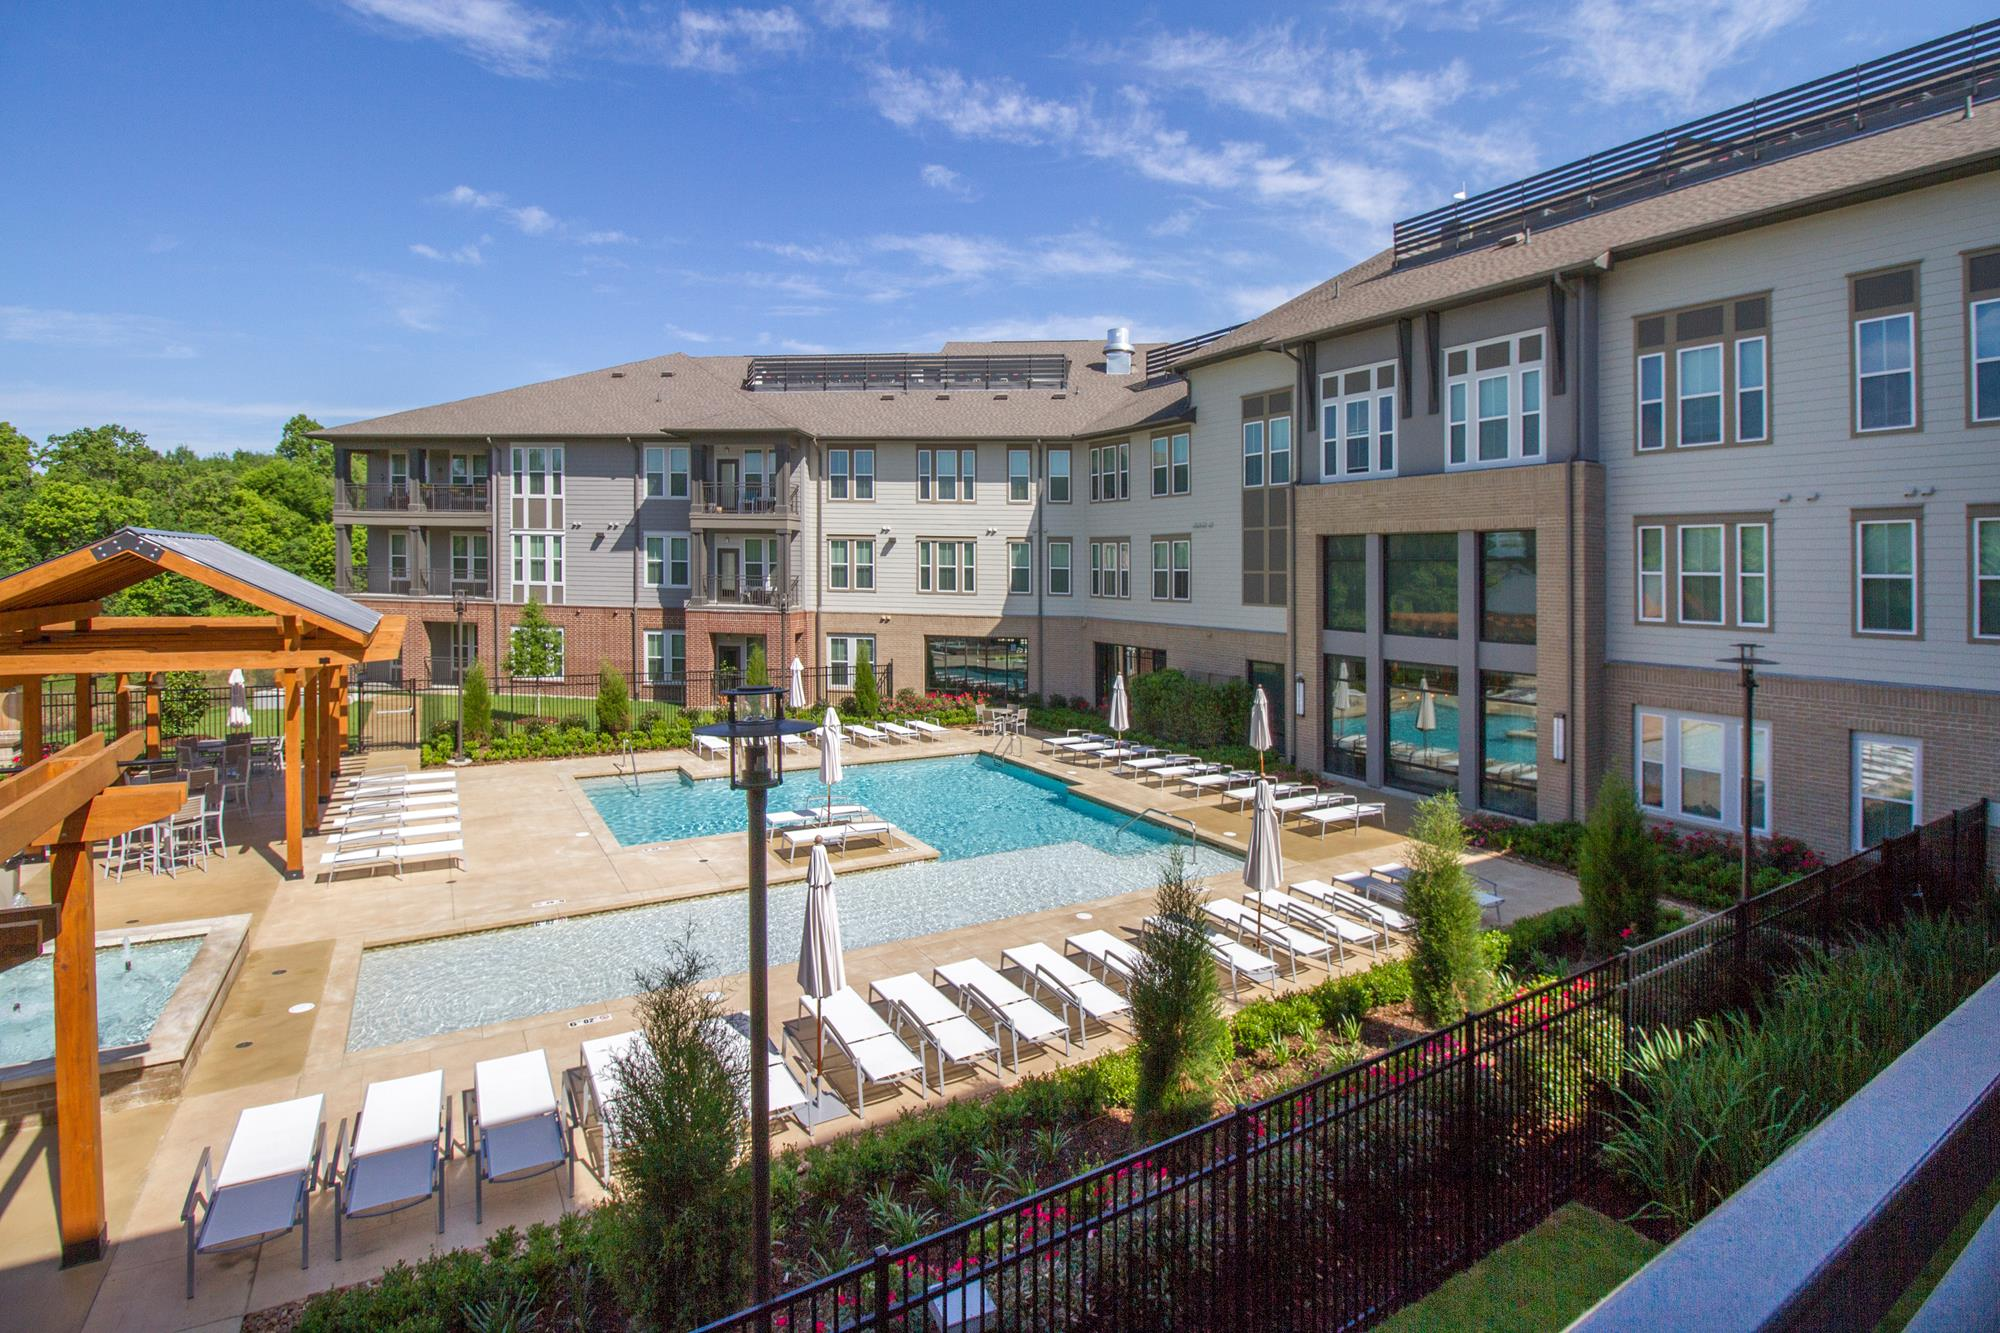 Upscale Lap and Lounge Swimming Pools with Cabana at The District, Baton Rouge